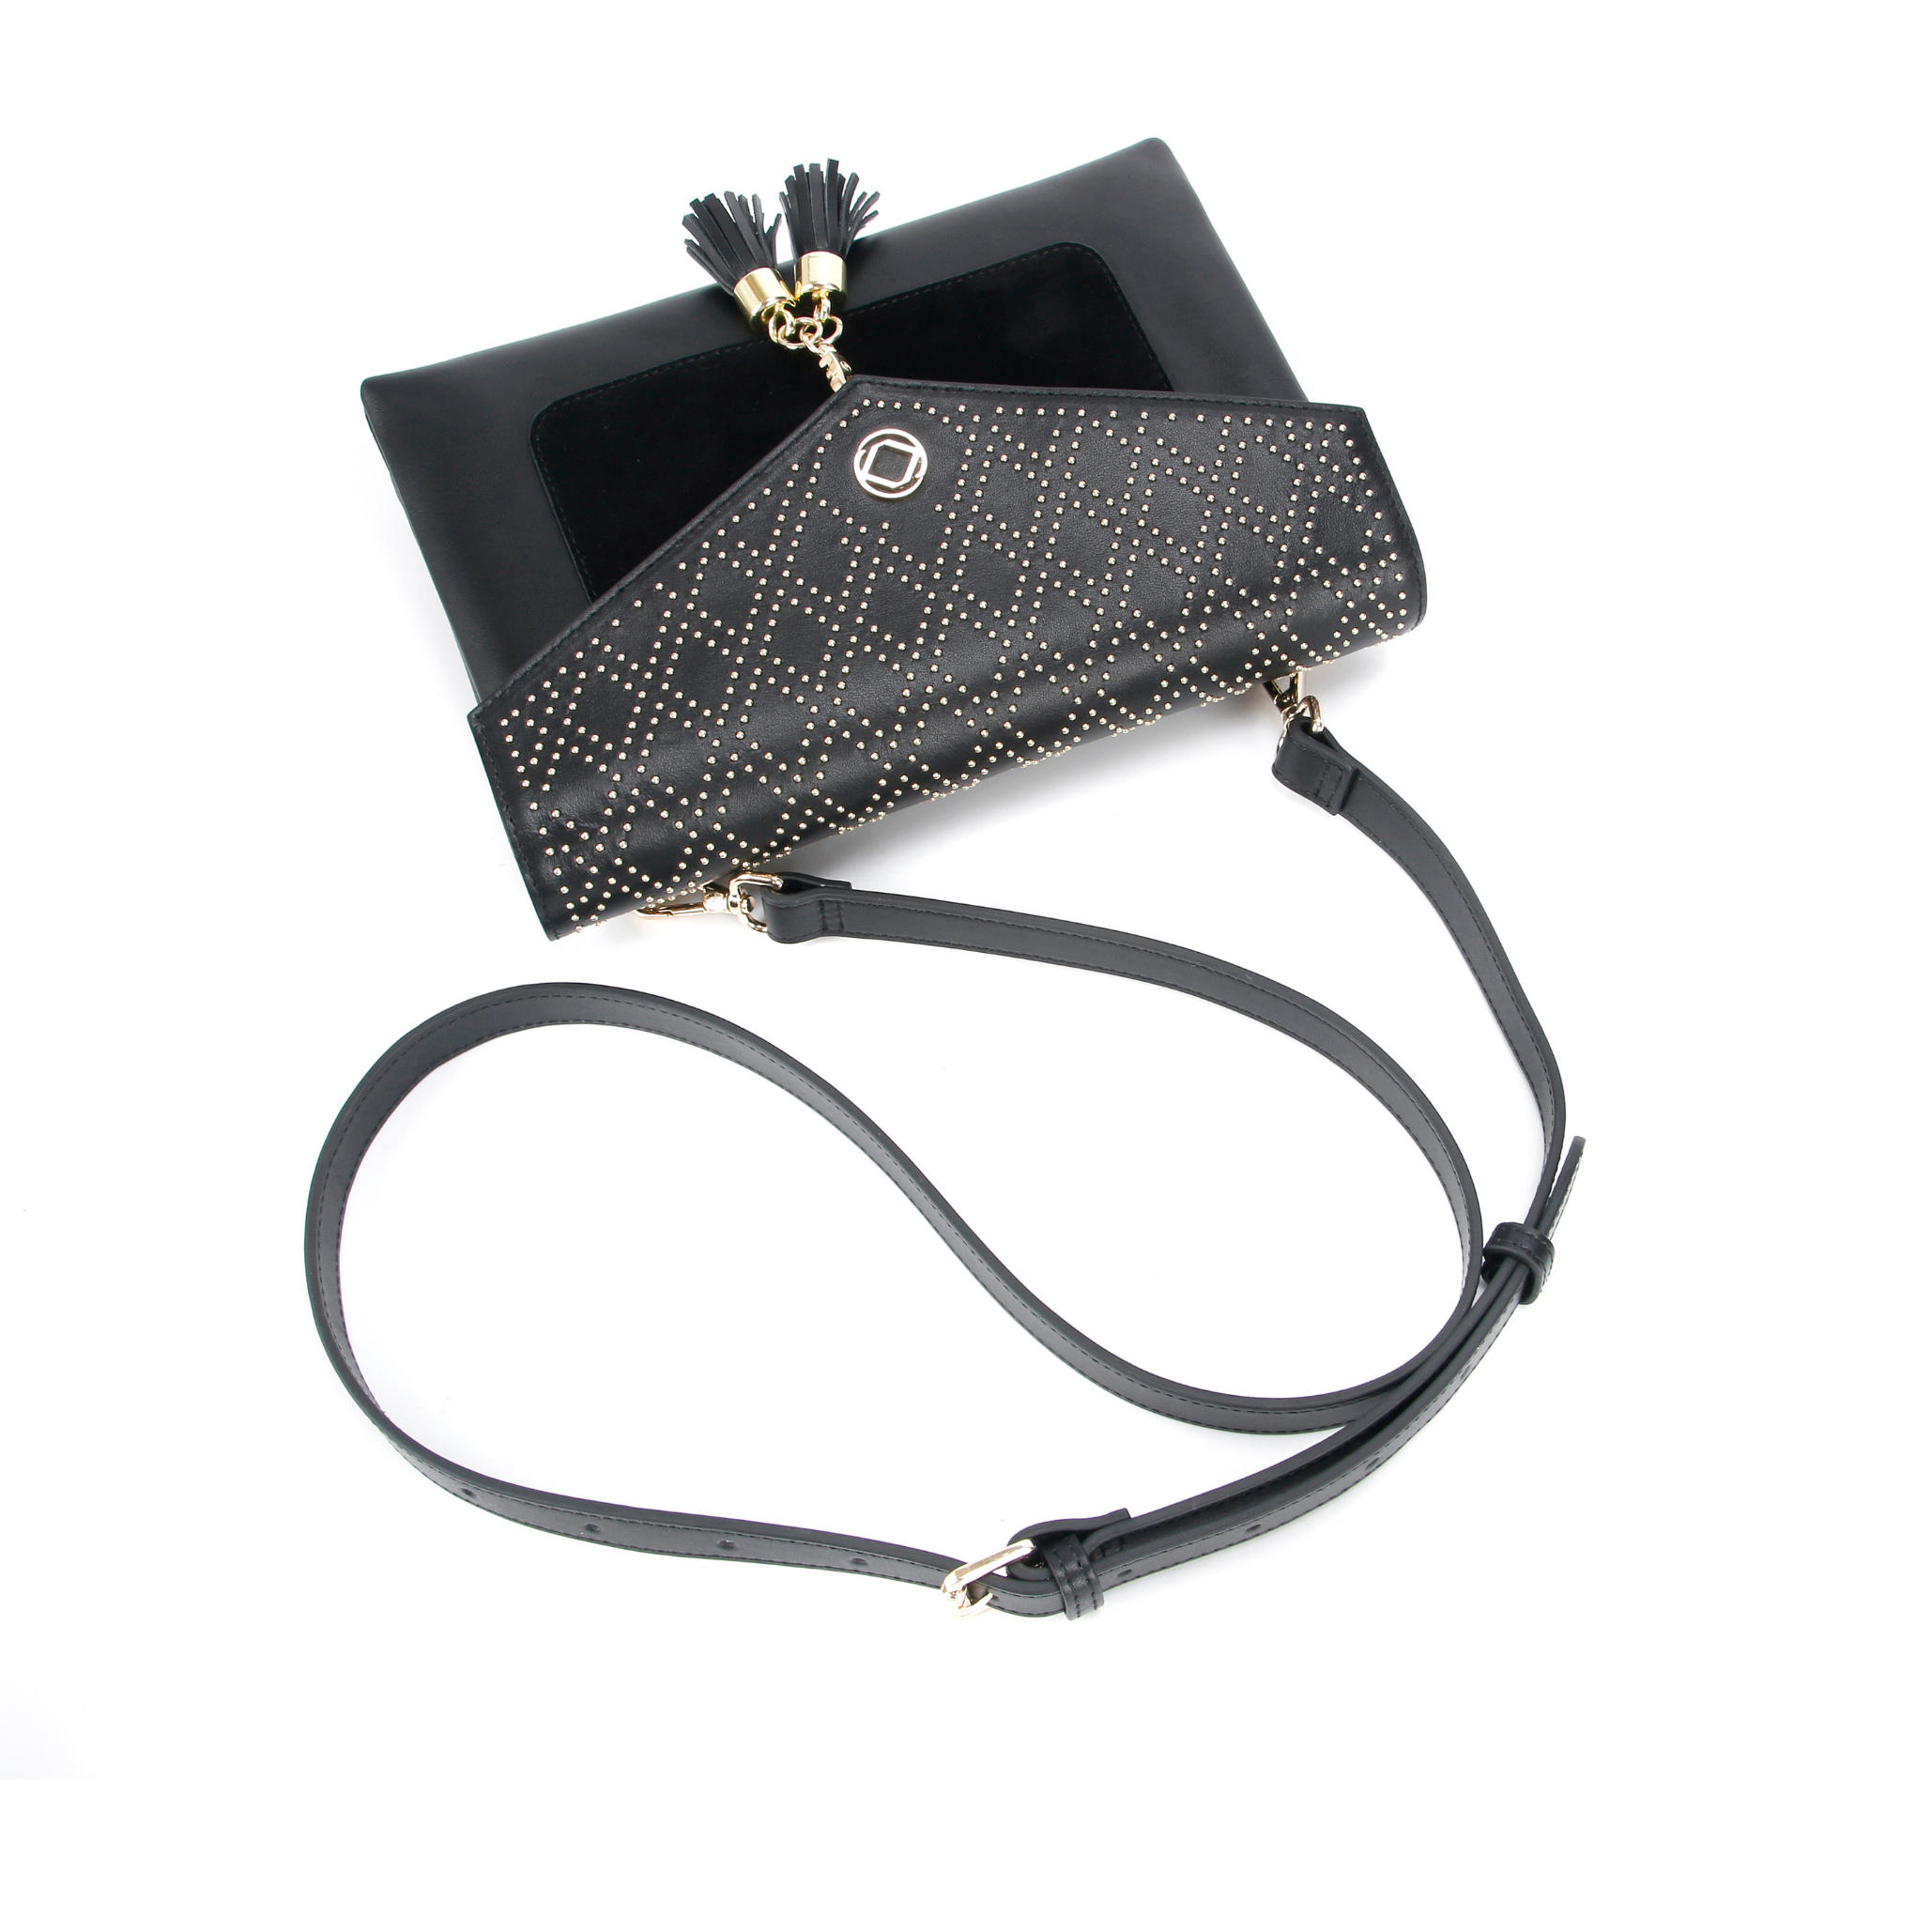 Harry black studded leather clutch and cross body bag -front view. trimmed with suede and removable tassels.